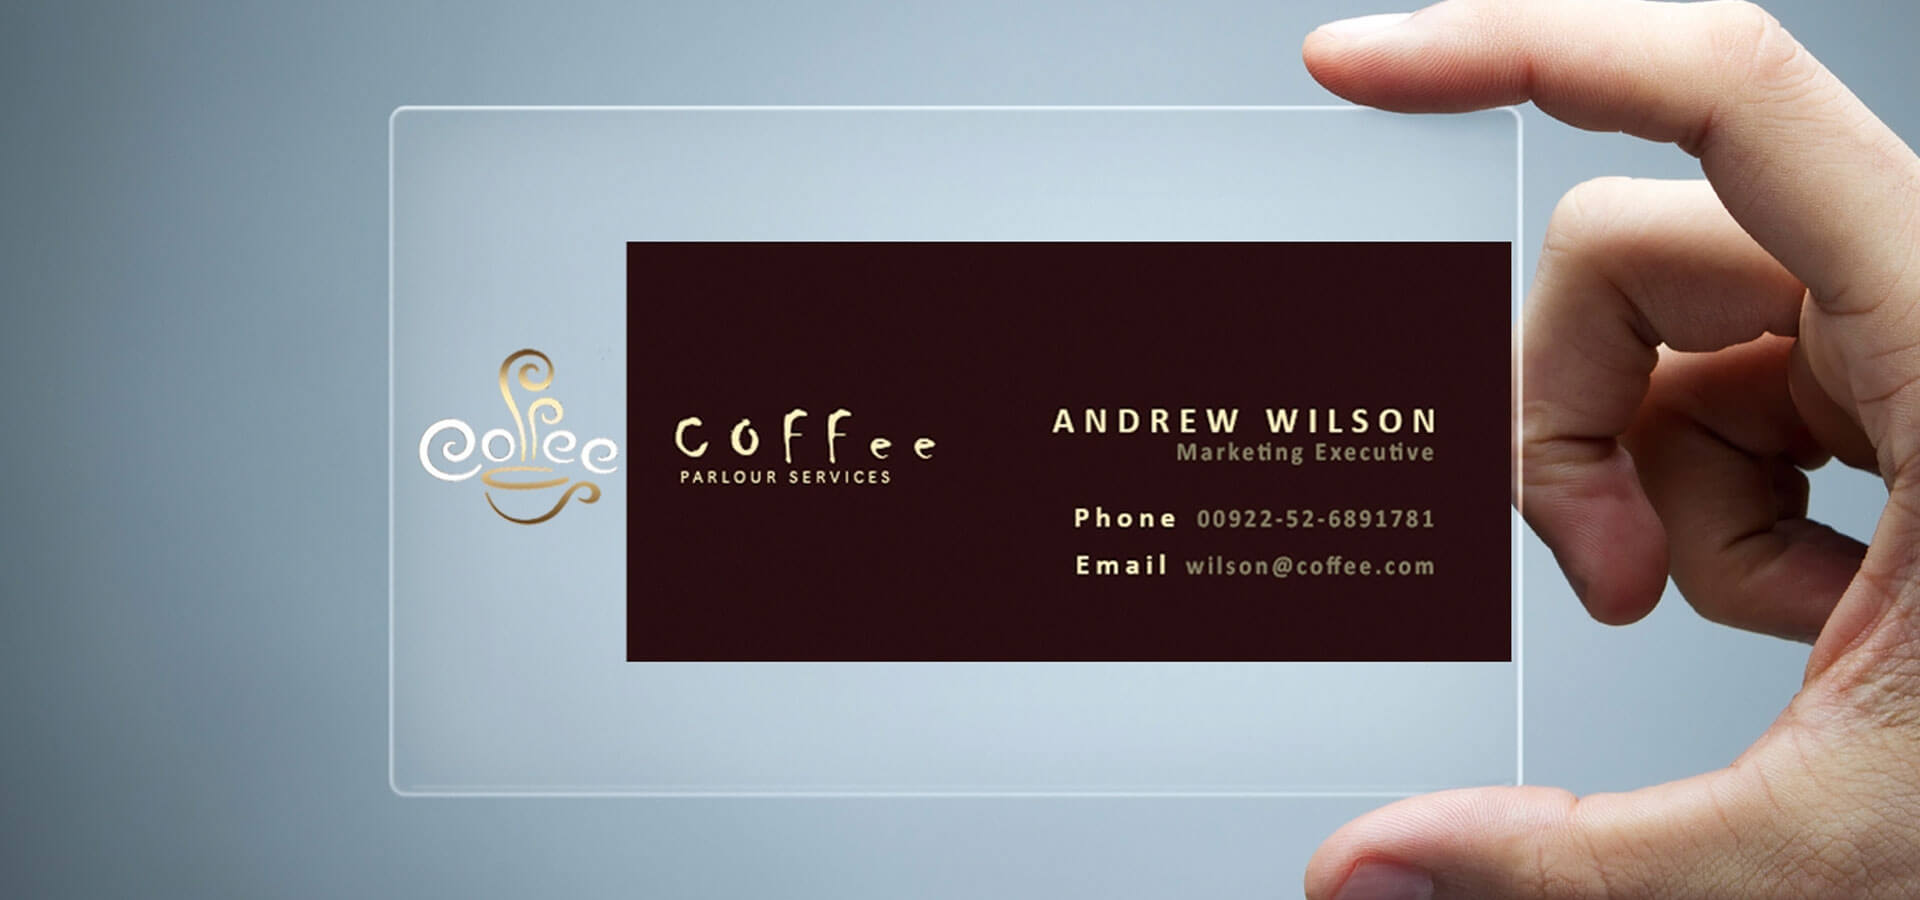 26+ Transparent Business Card Templates - Illustrator, Ms regarding Transparent Business Cards Template